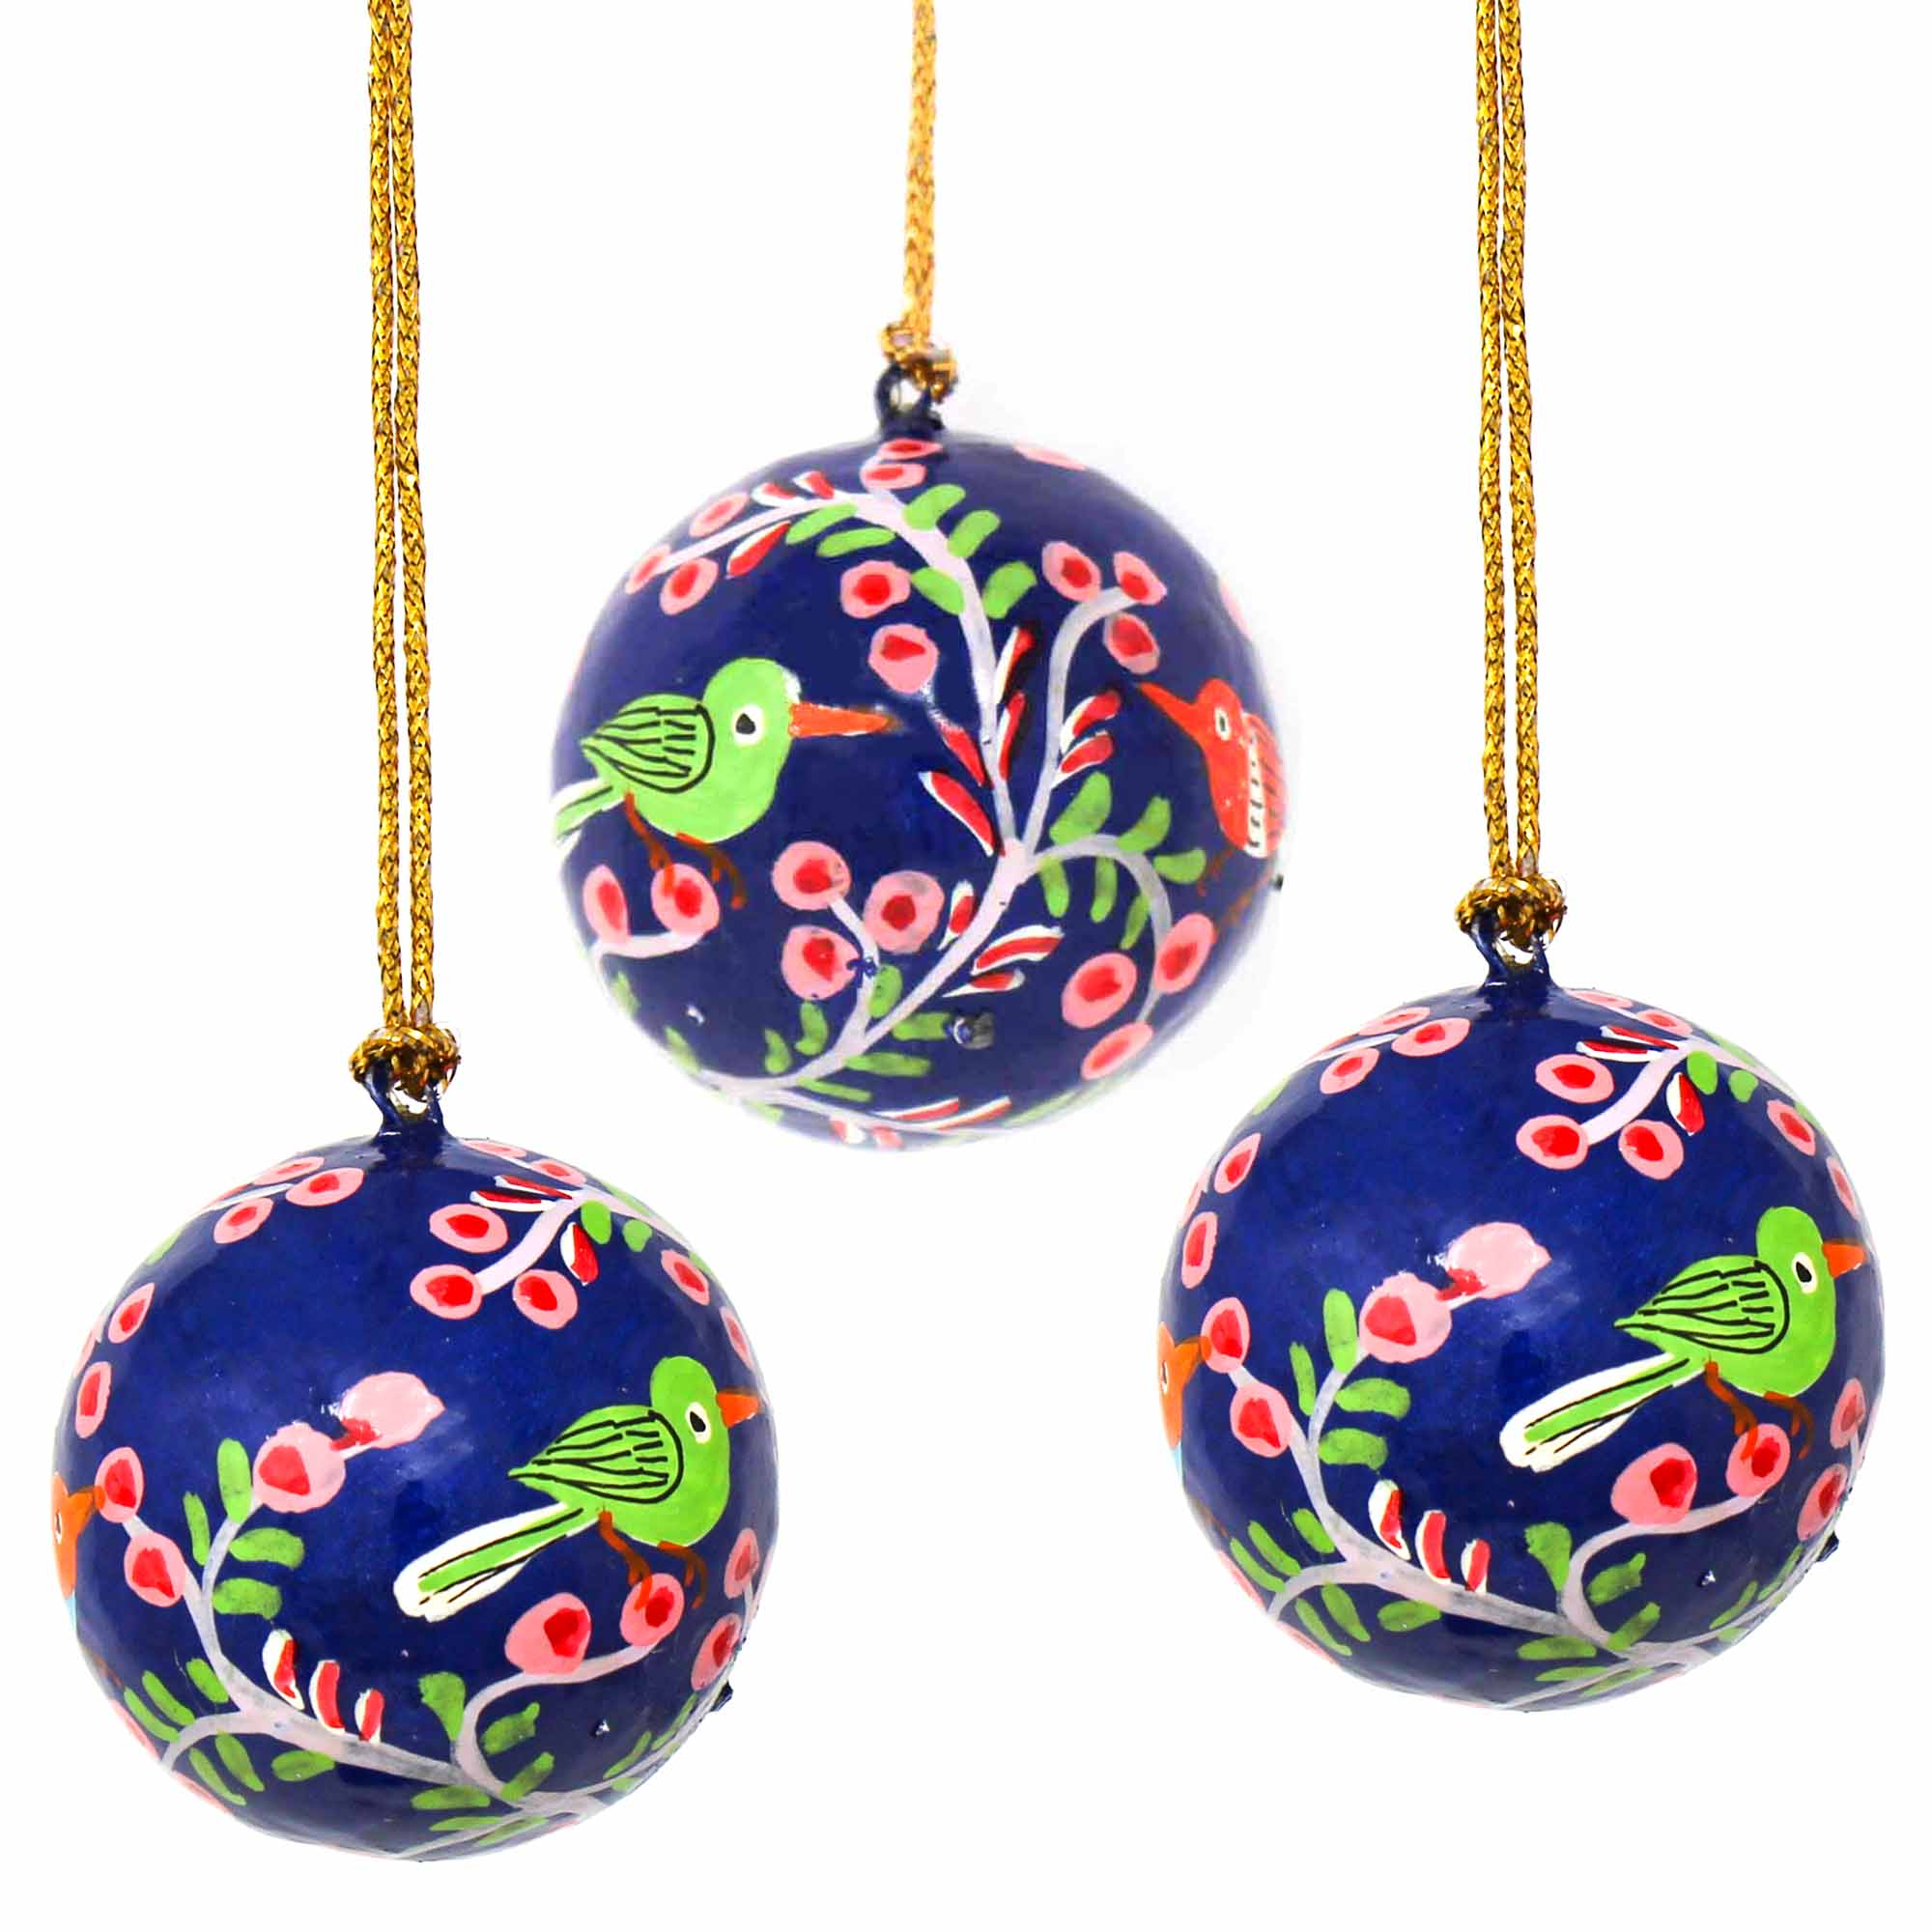 Handpainted Petite Ornament Bright Birds, 1-inch - Pack of 3